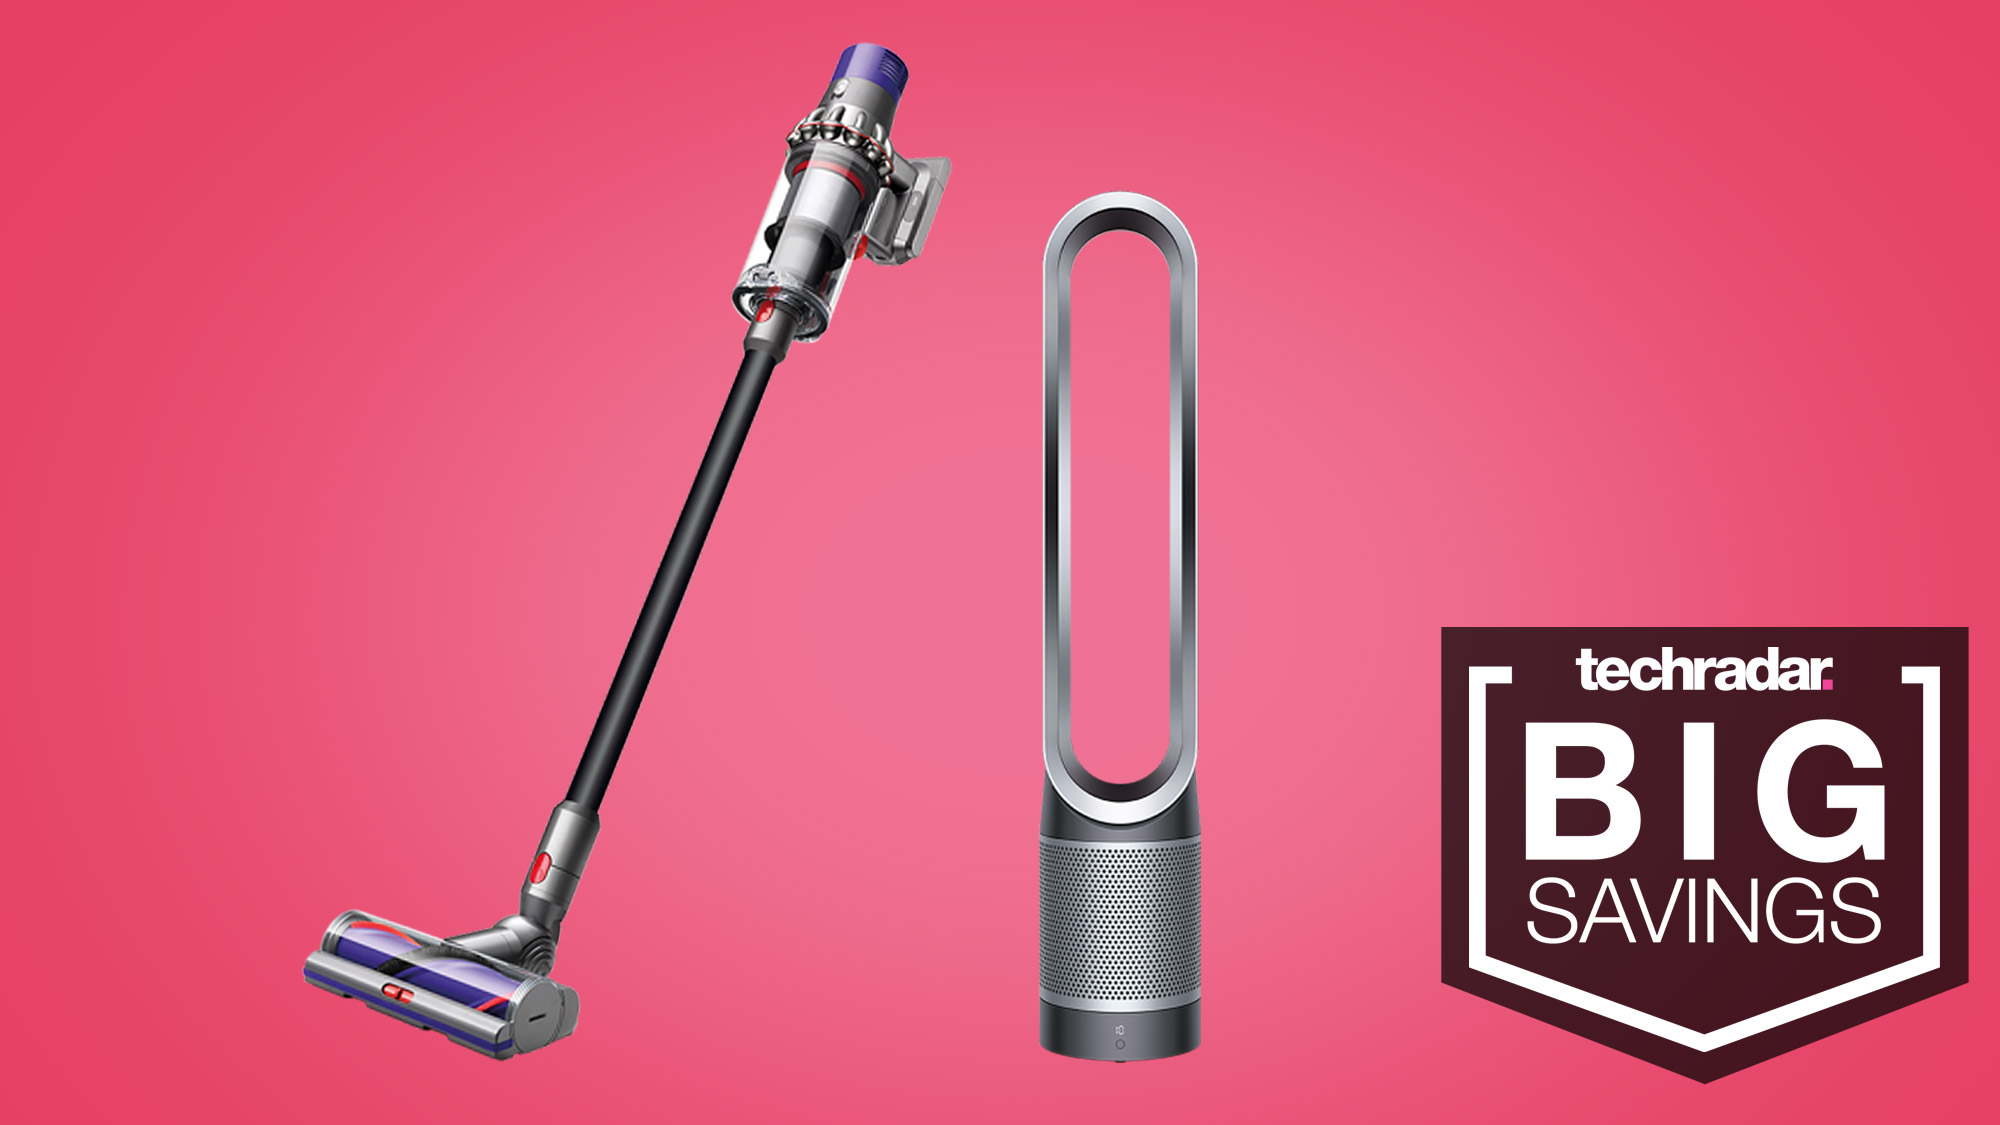 Dyson Australia says 'forget Black Friday', launches its own week of exclusive deals thumbnail